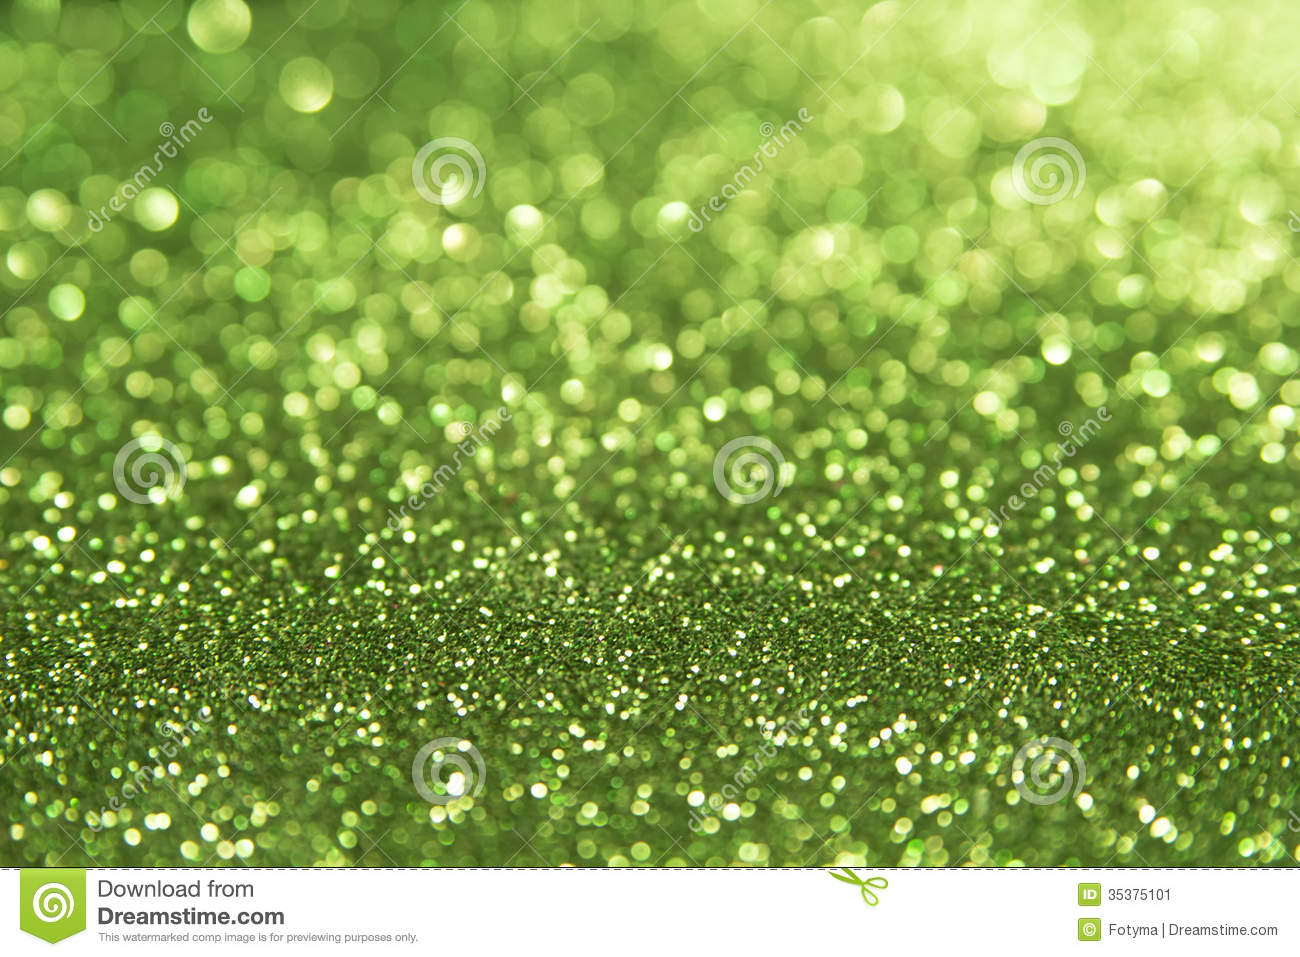 green sparkle background - photo #23